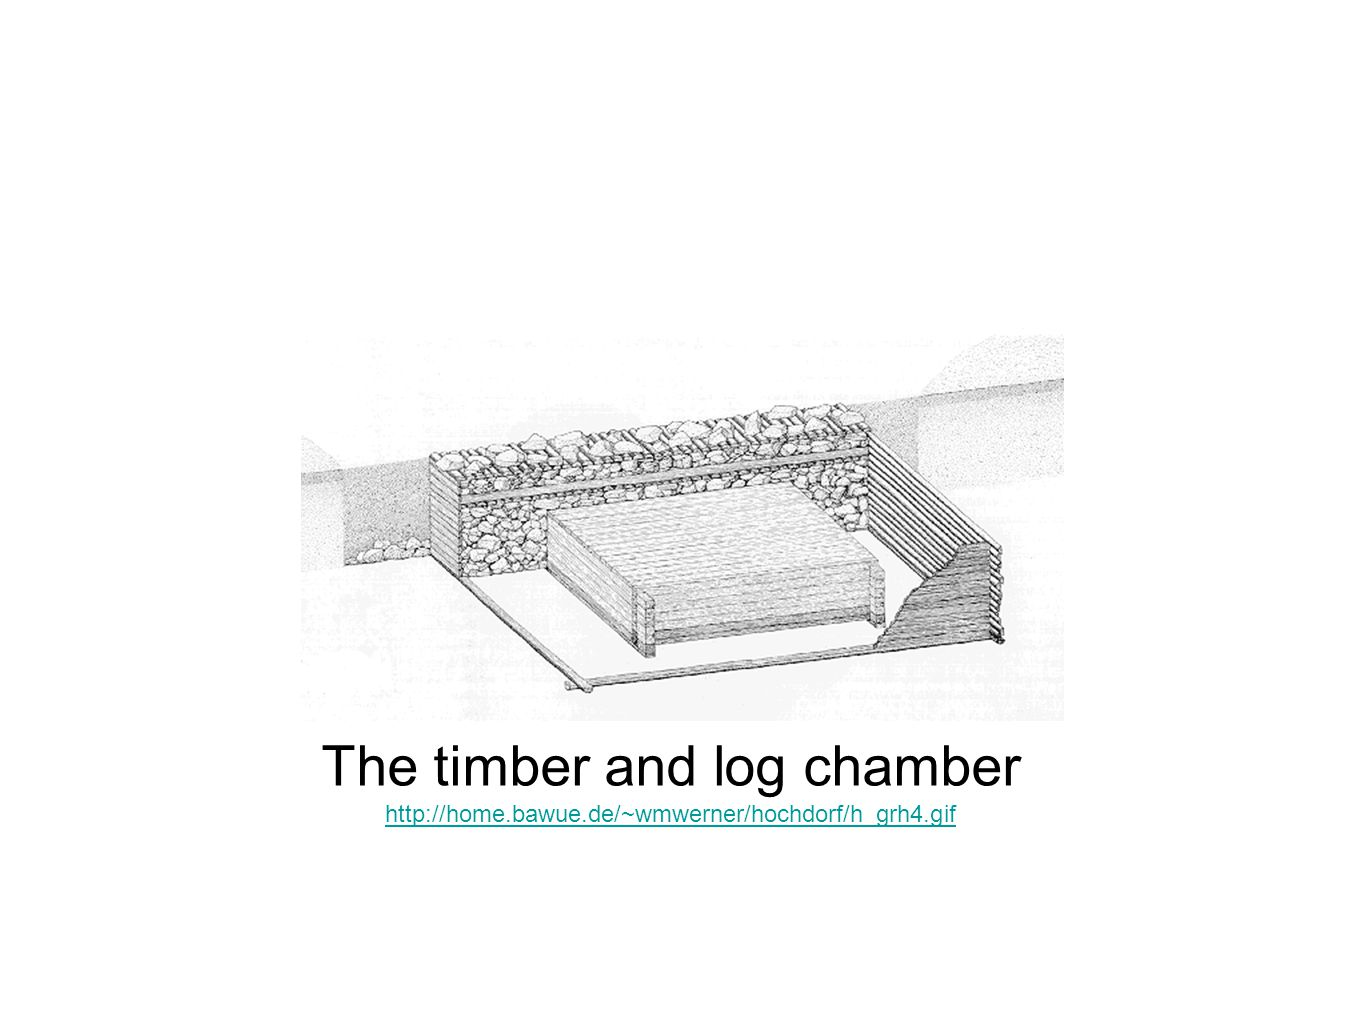 The timber and log chamber